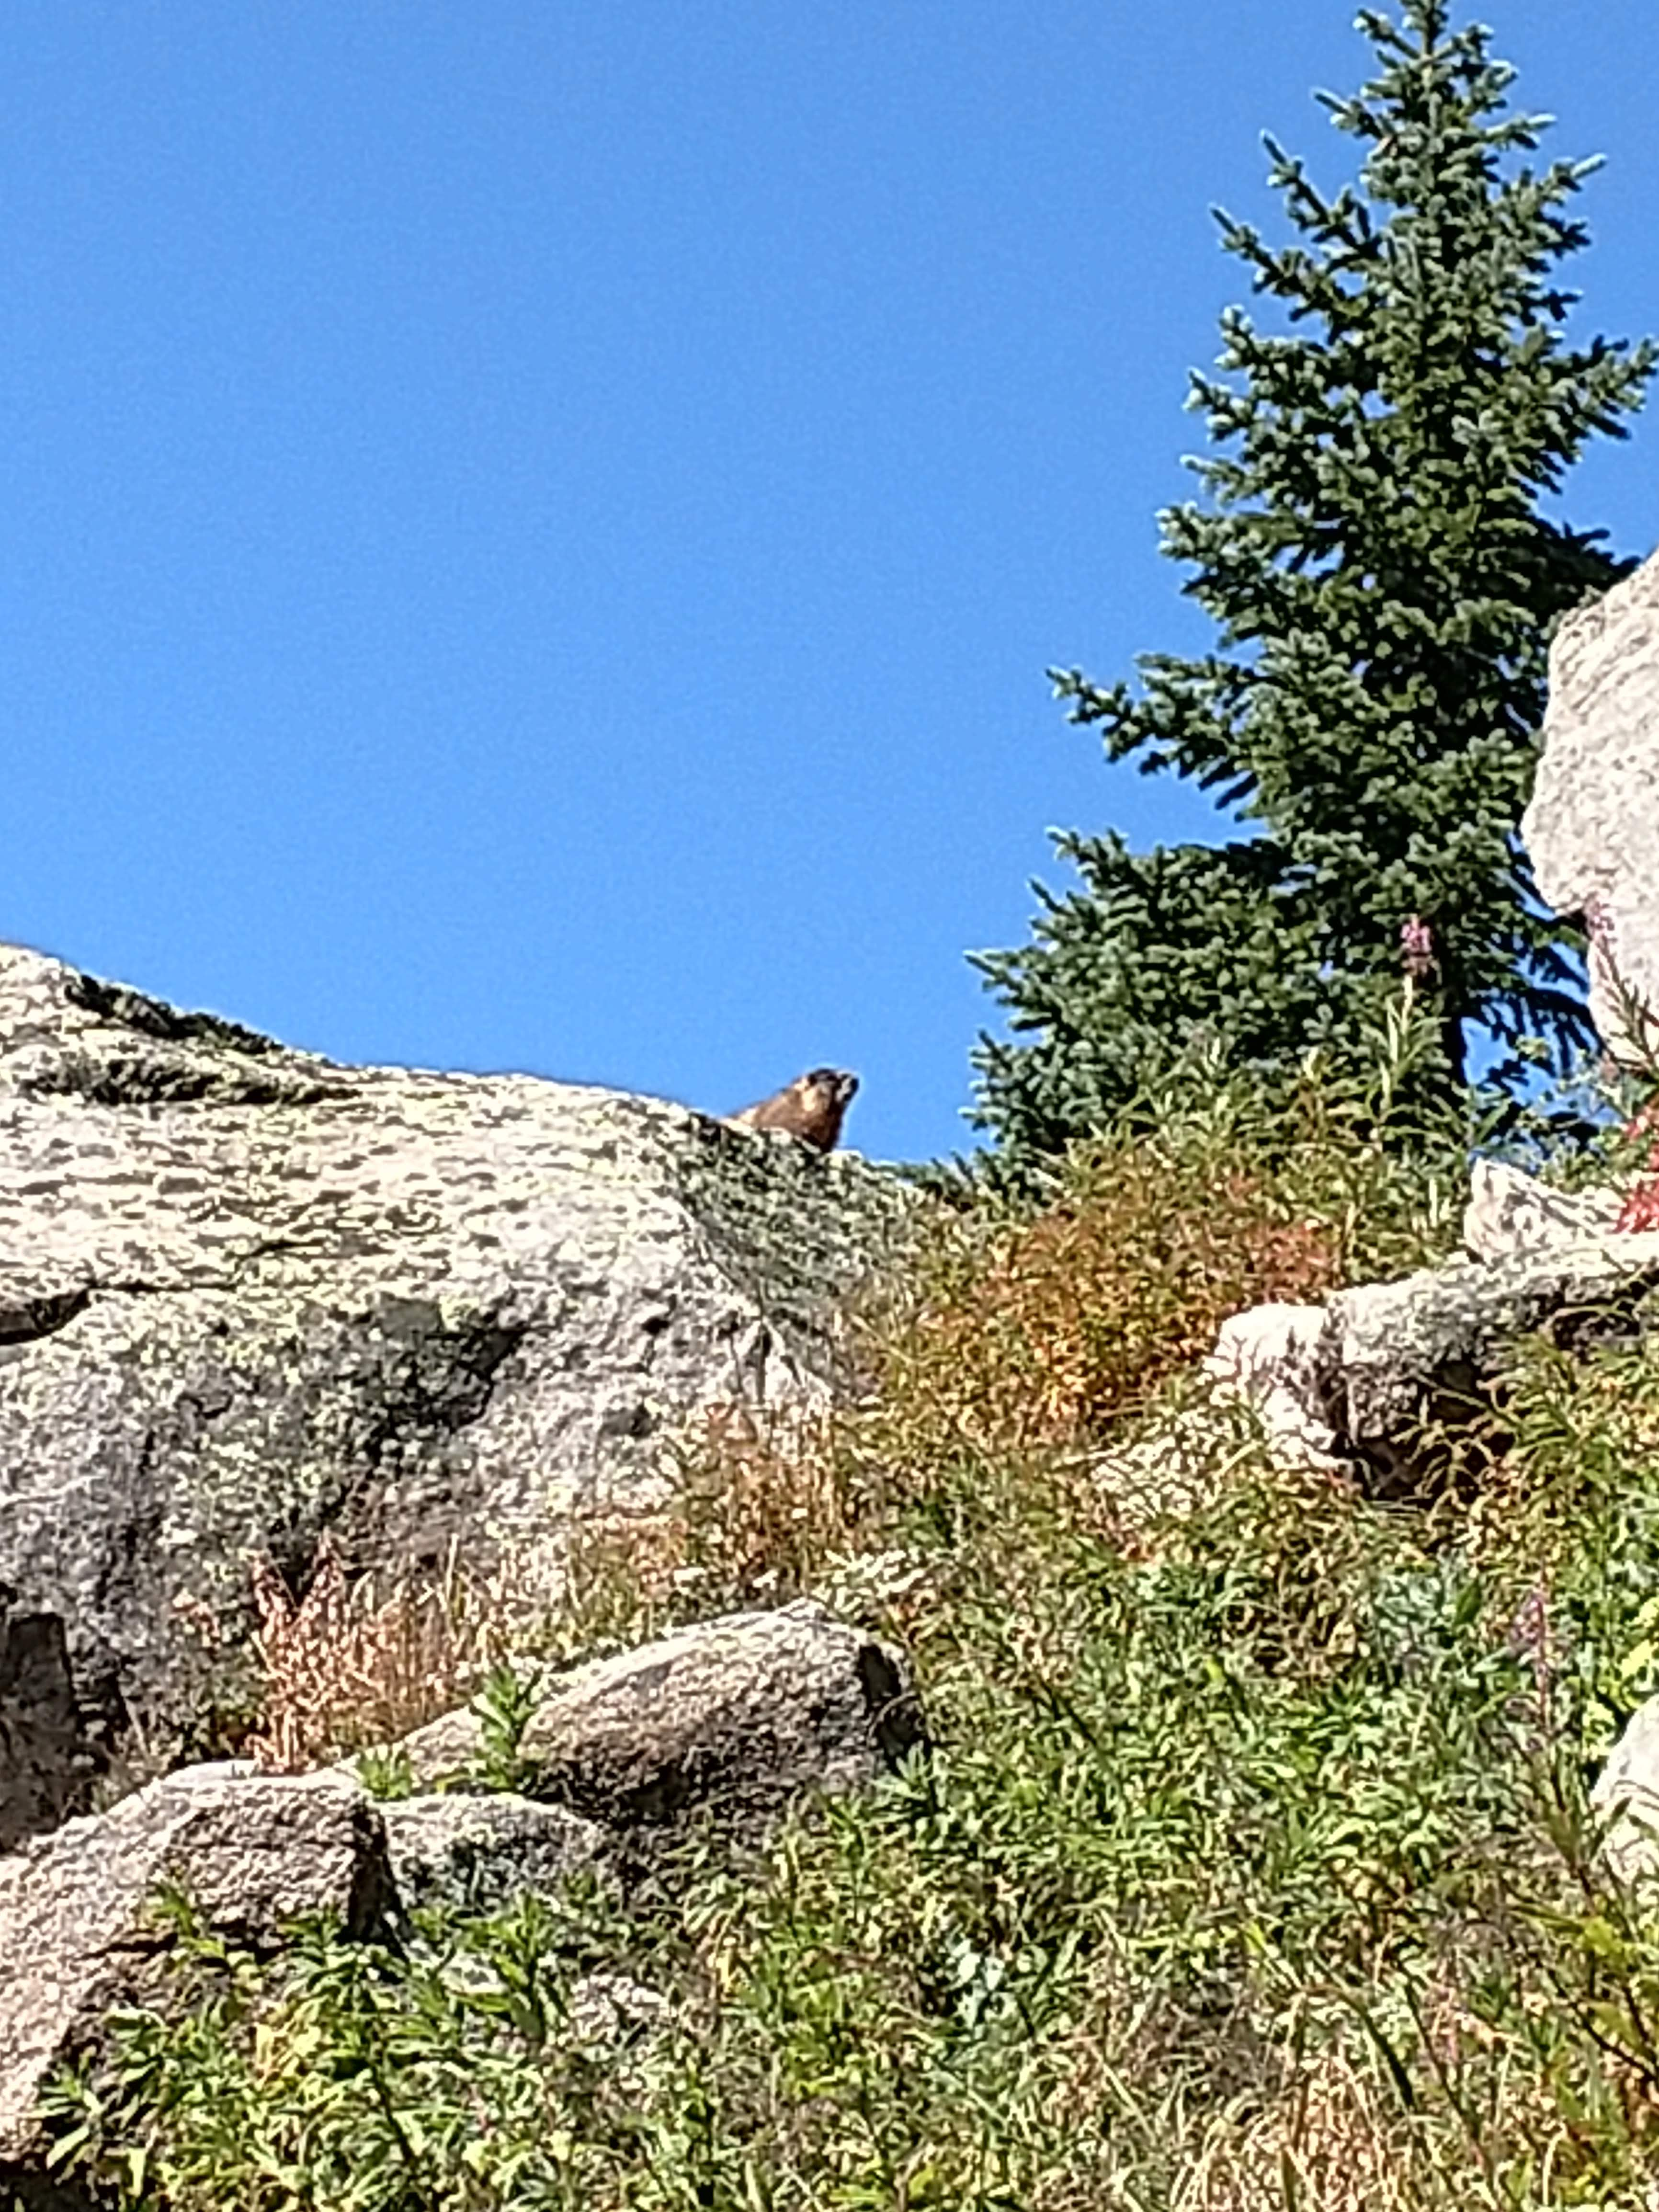 A guardian marmot protects the ripe currants.